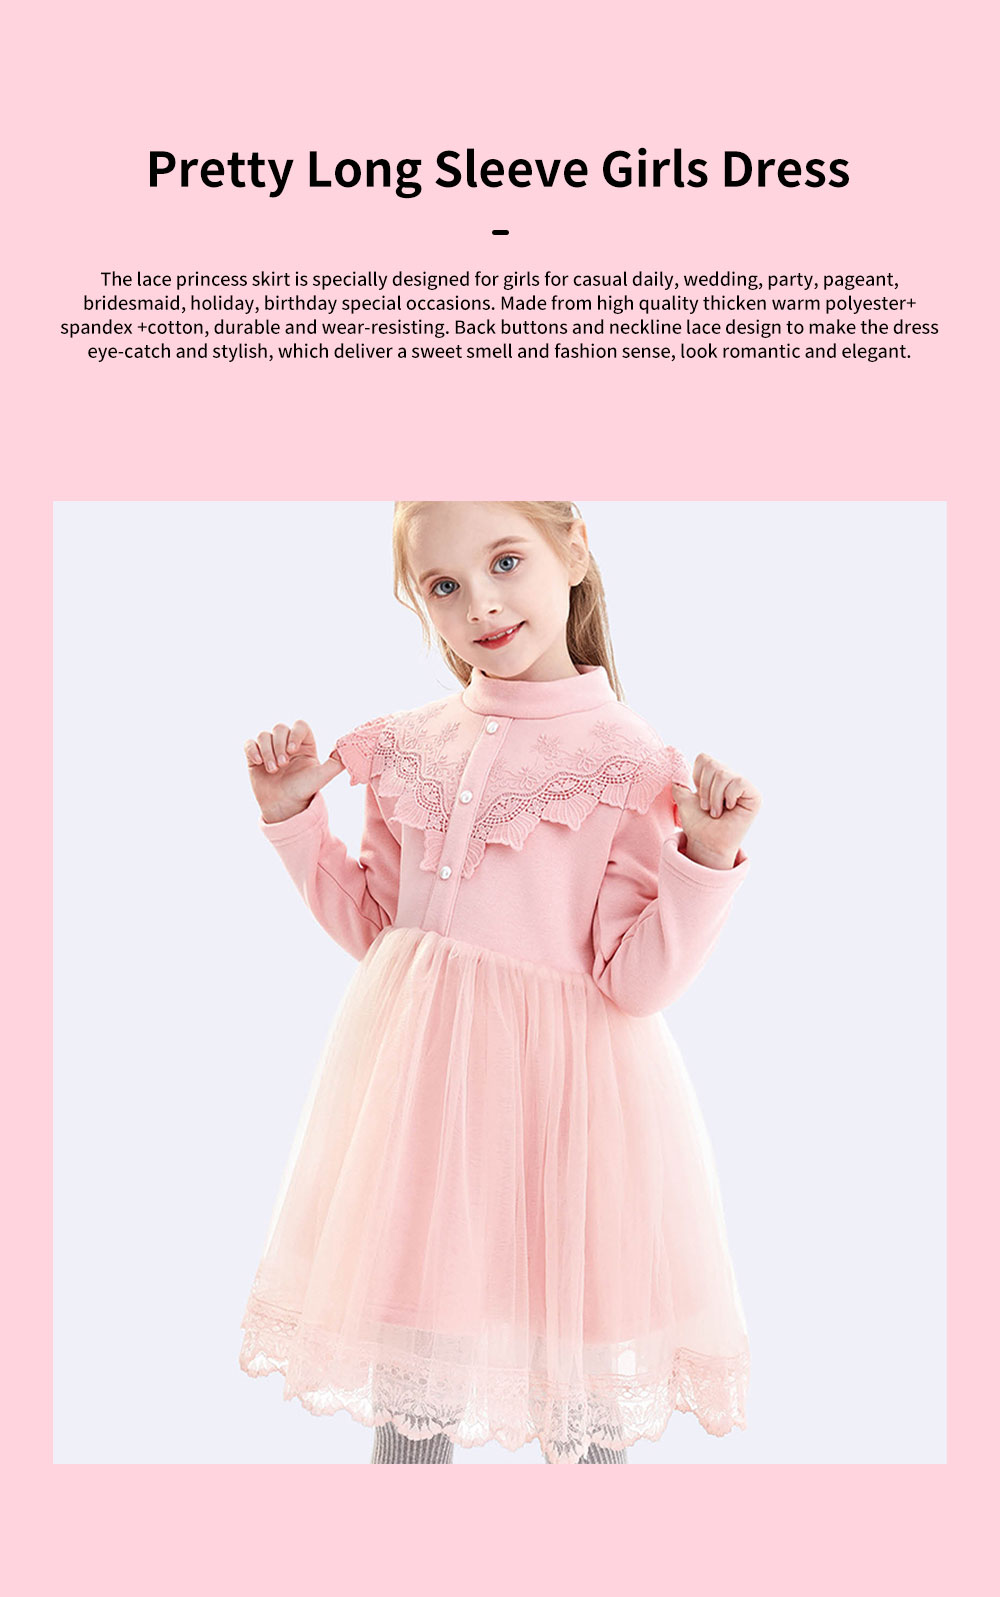 Warm Girl's One-piece Dress for Winter Autumn Fashion Grenadine Lace Princess Skirt with Buttons Pretty Long Sleeve Girls Dress 0